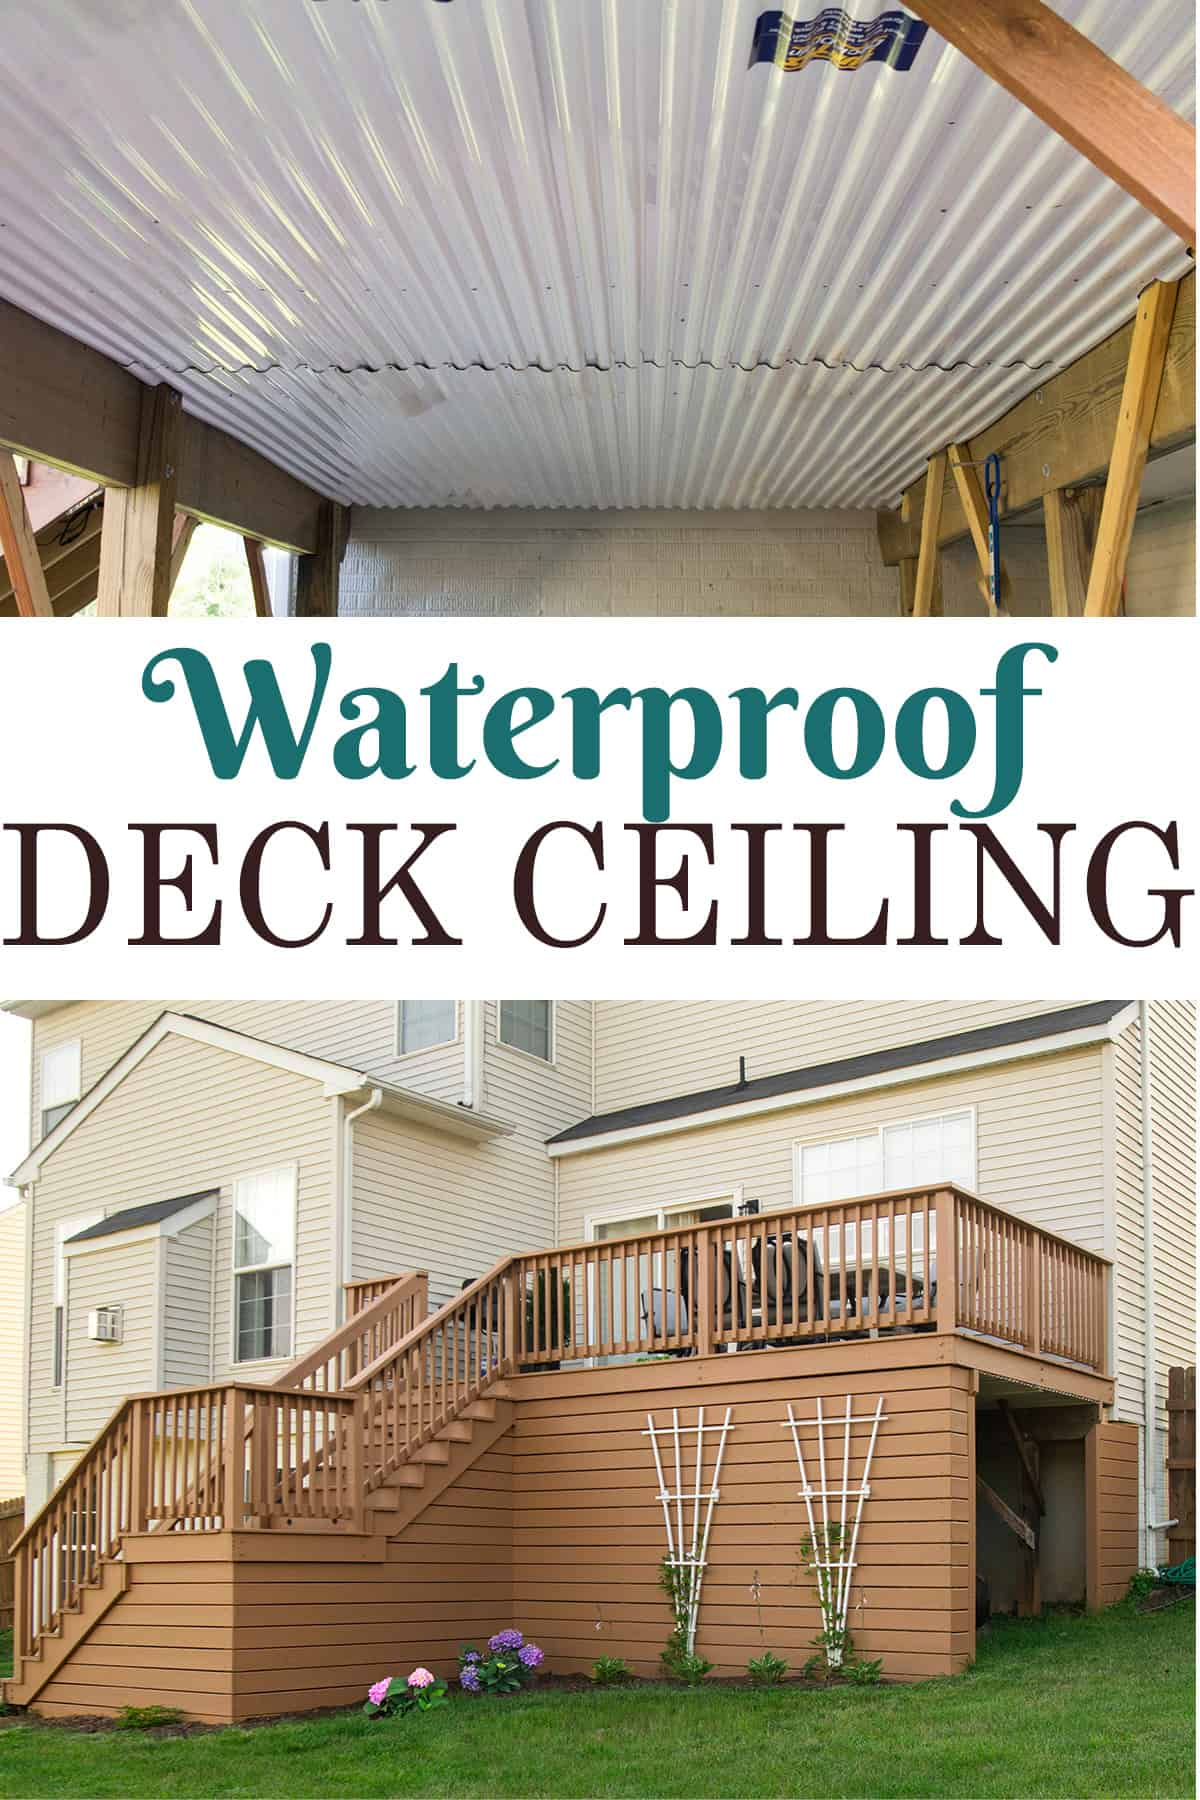 Collage of waterproof deck ceiling drainage system showing the inside and outside of the deck area.